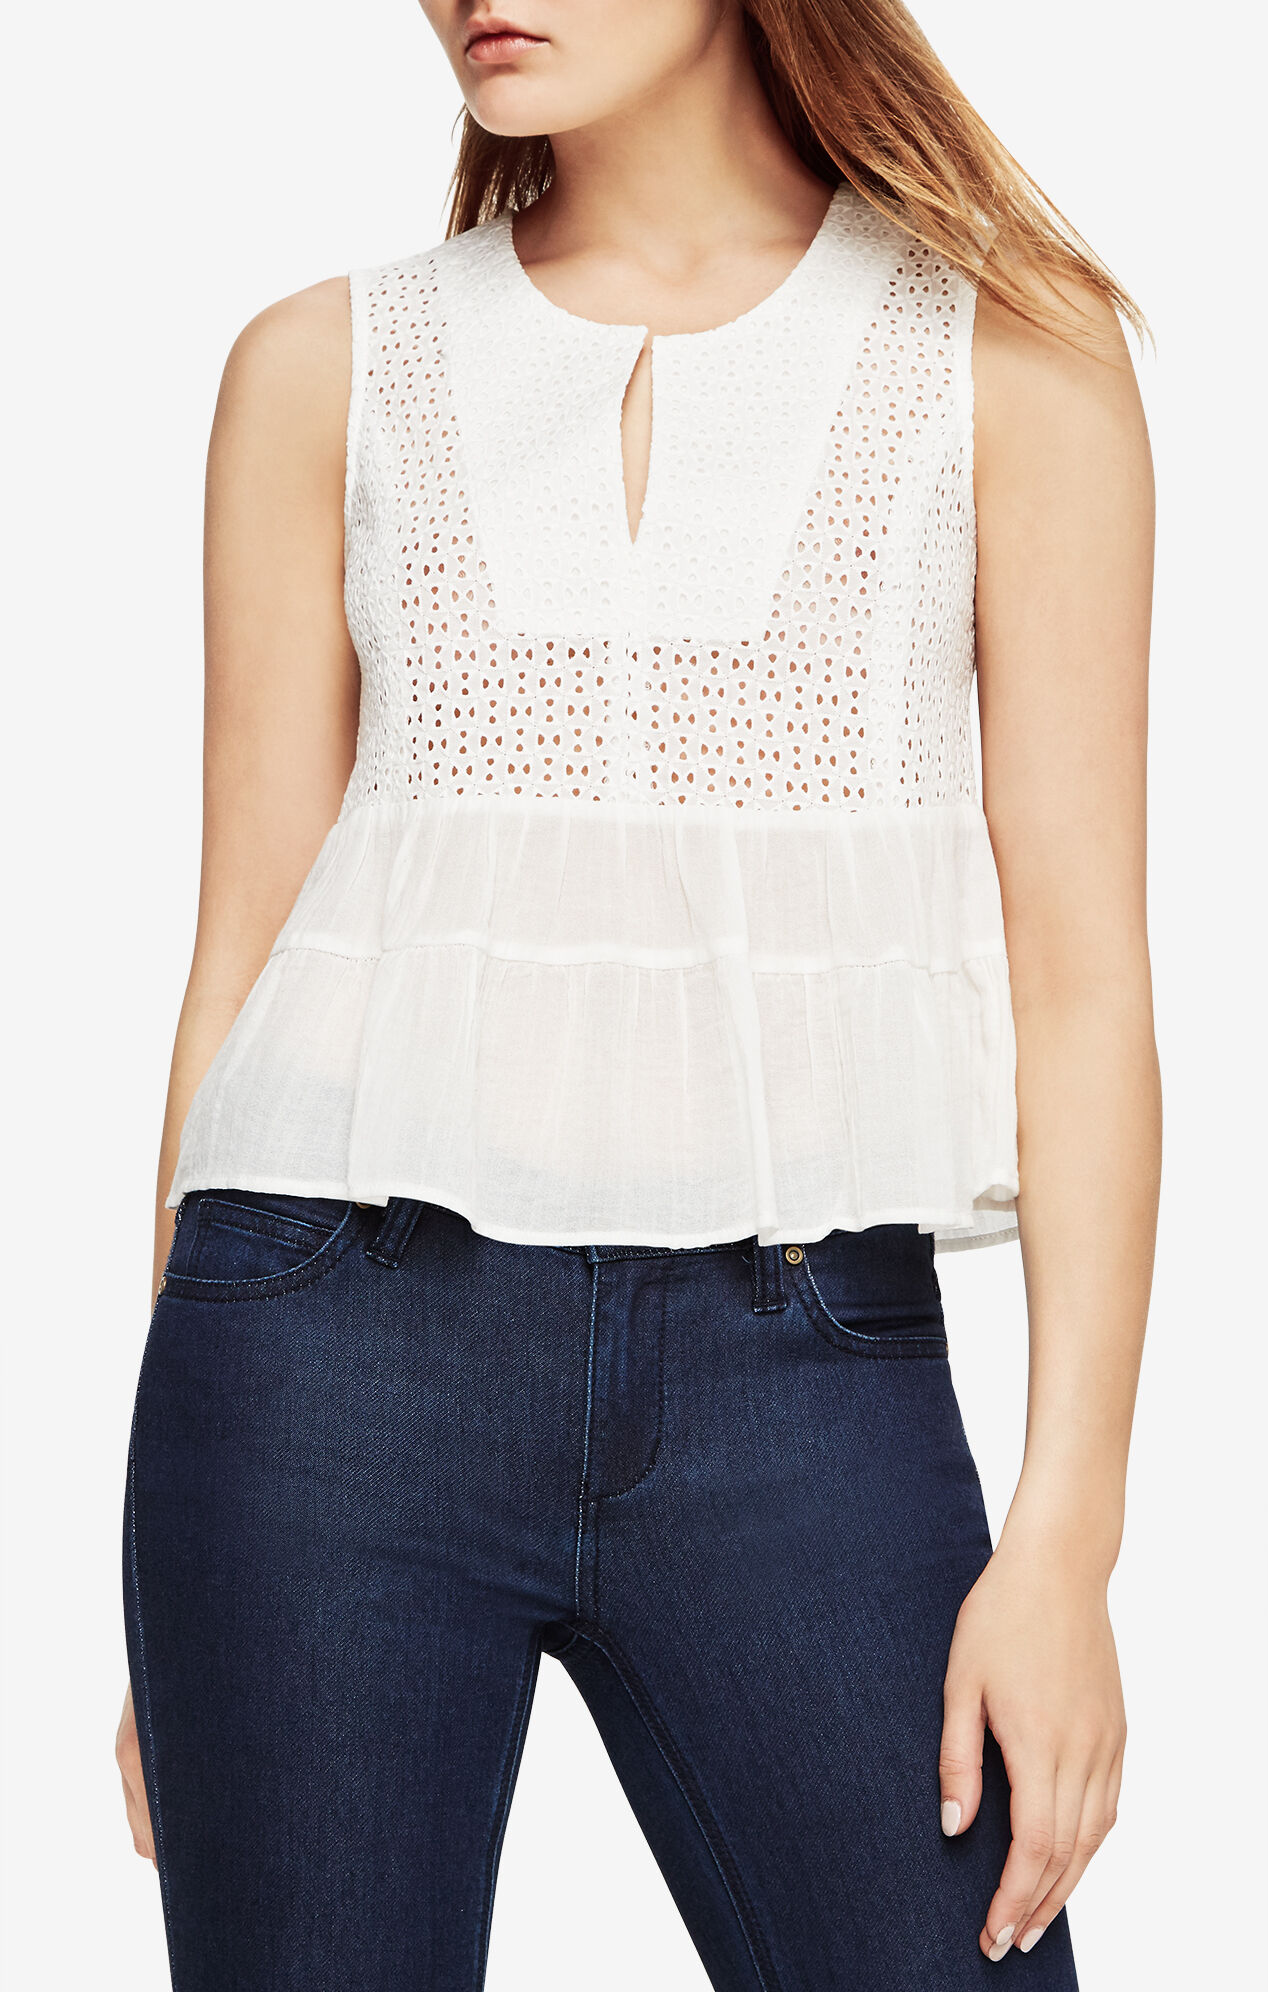 Kaylee Eyelet Top